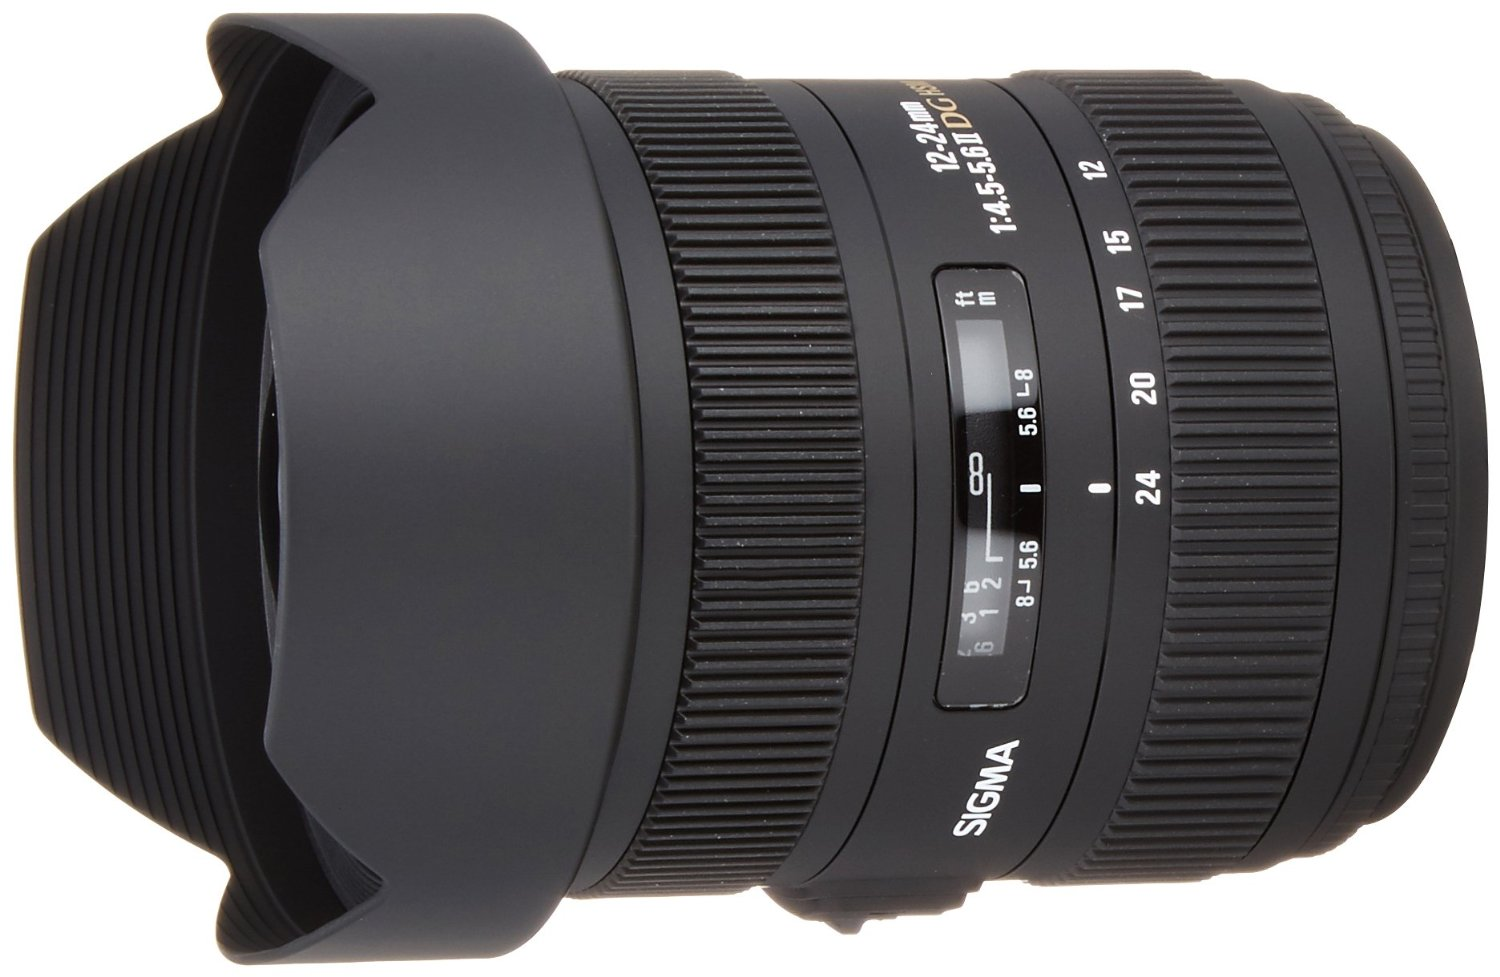 【新品】(シグマ) SIGMA 12-24/F4.5-5.6(2) DG HSM SO